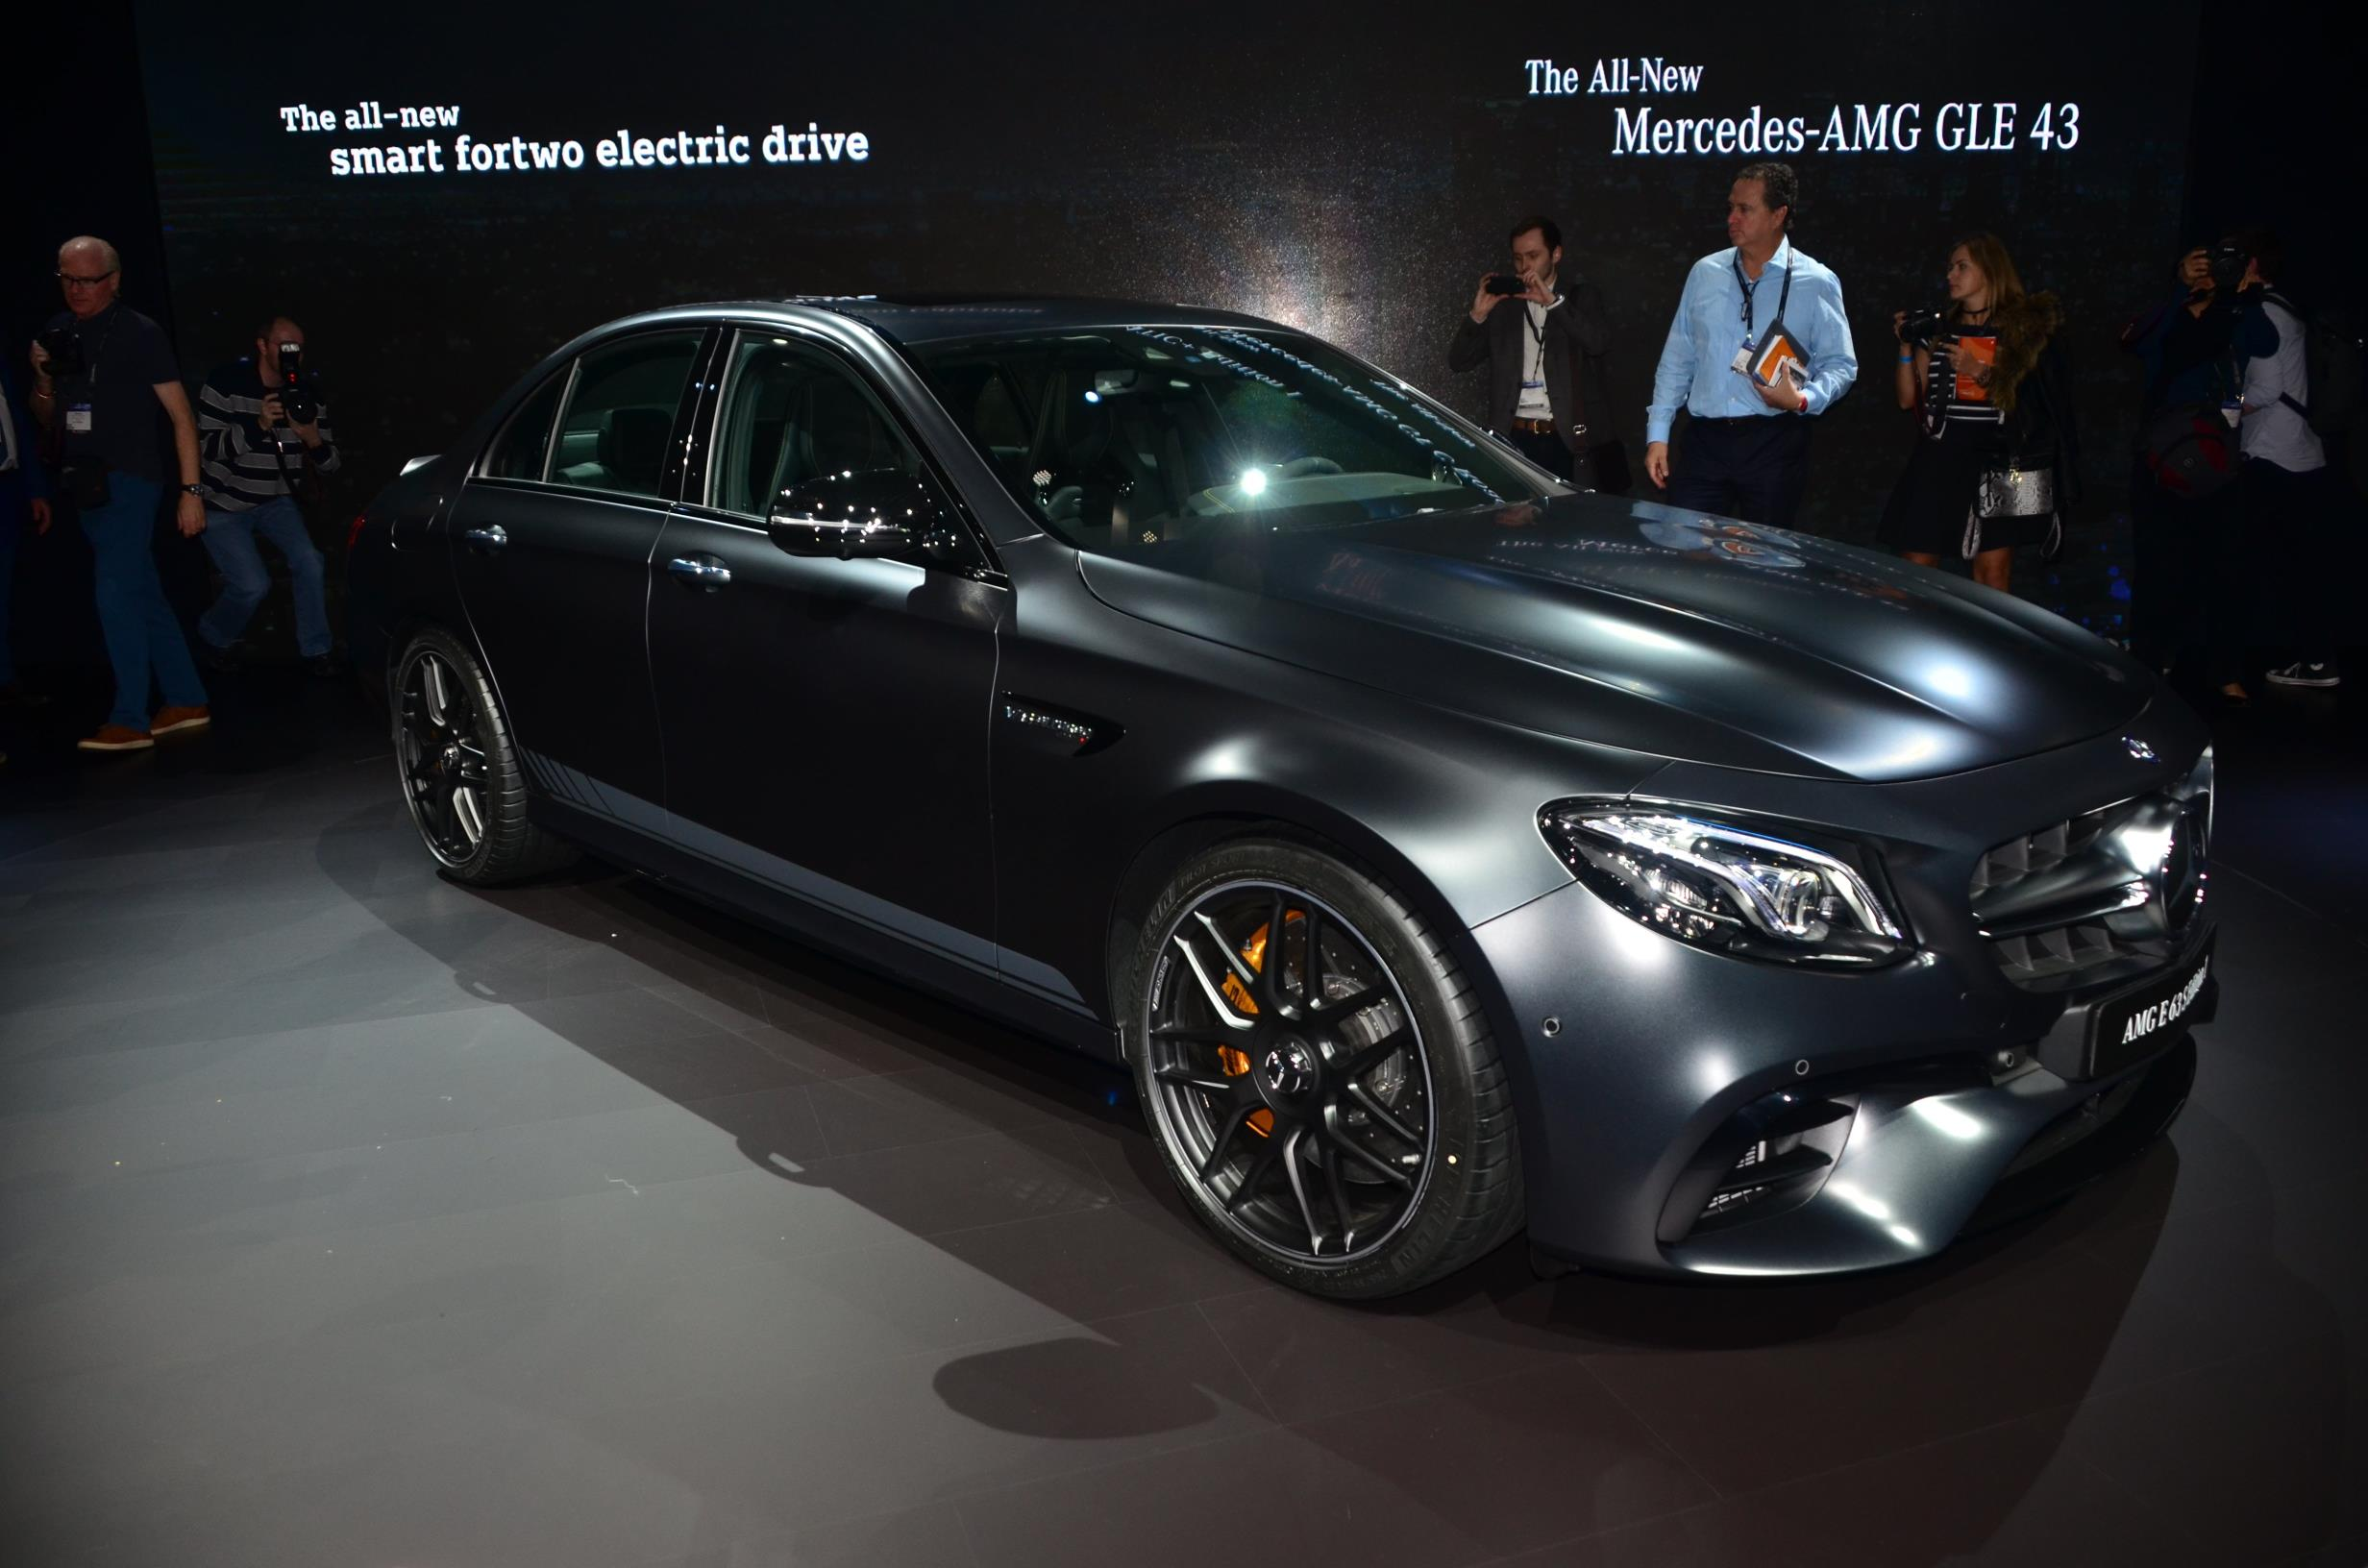 AMG models come out quite often, but this one feels really special, as ...